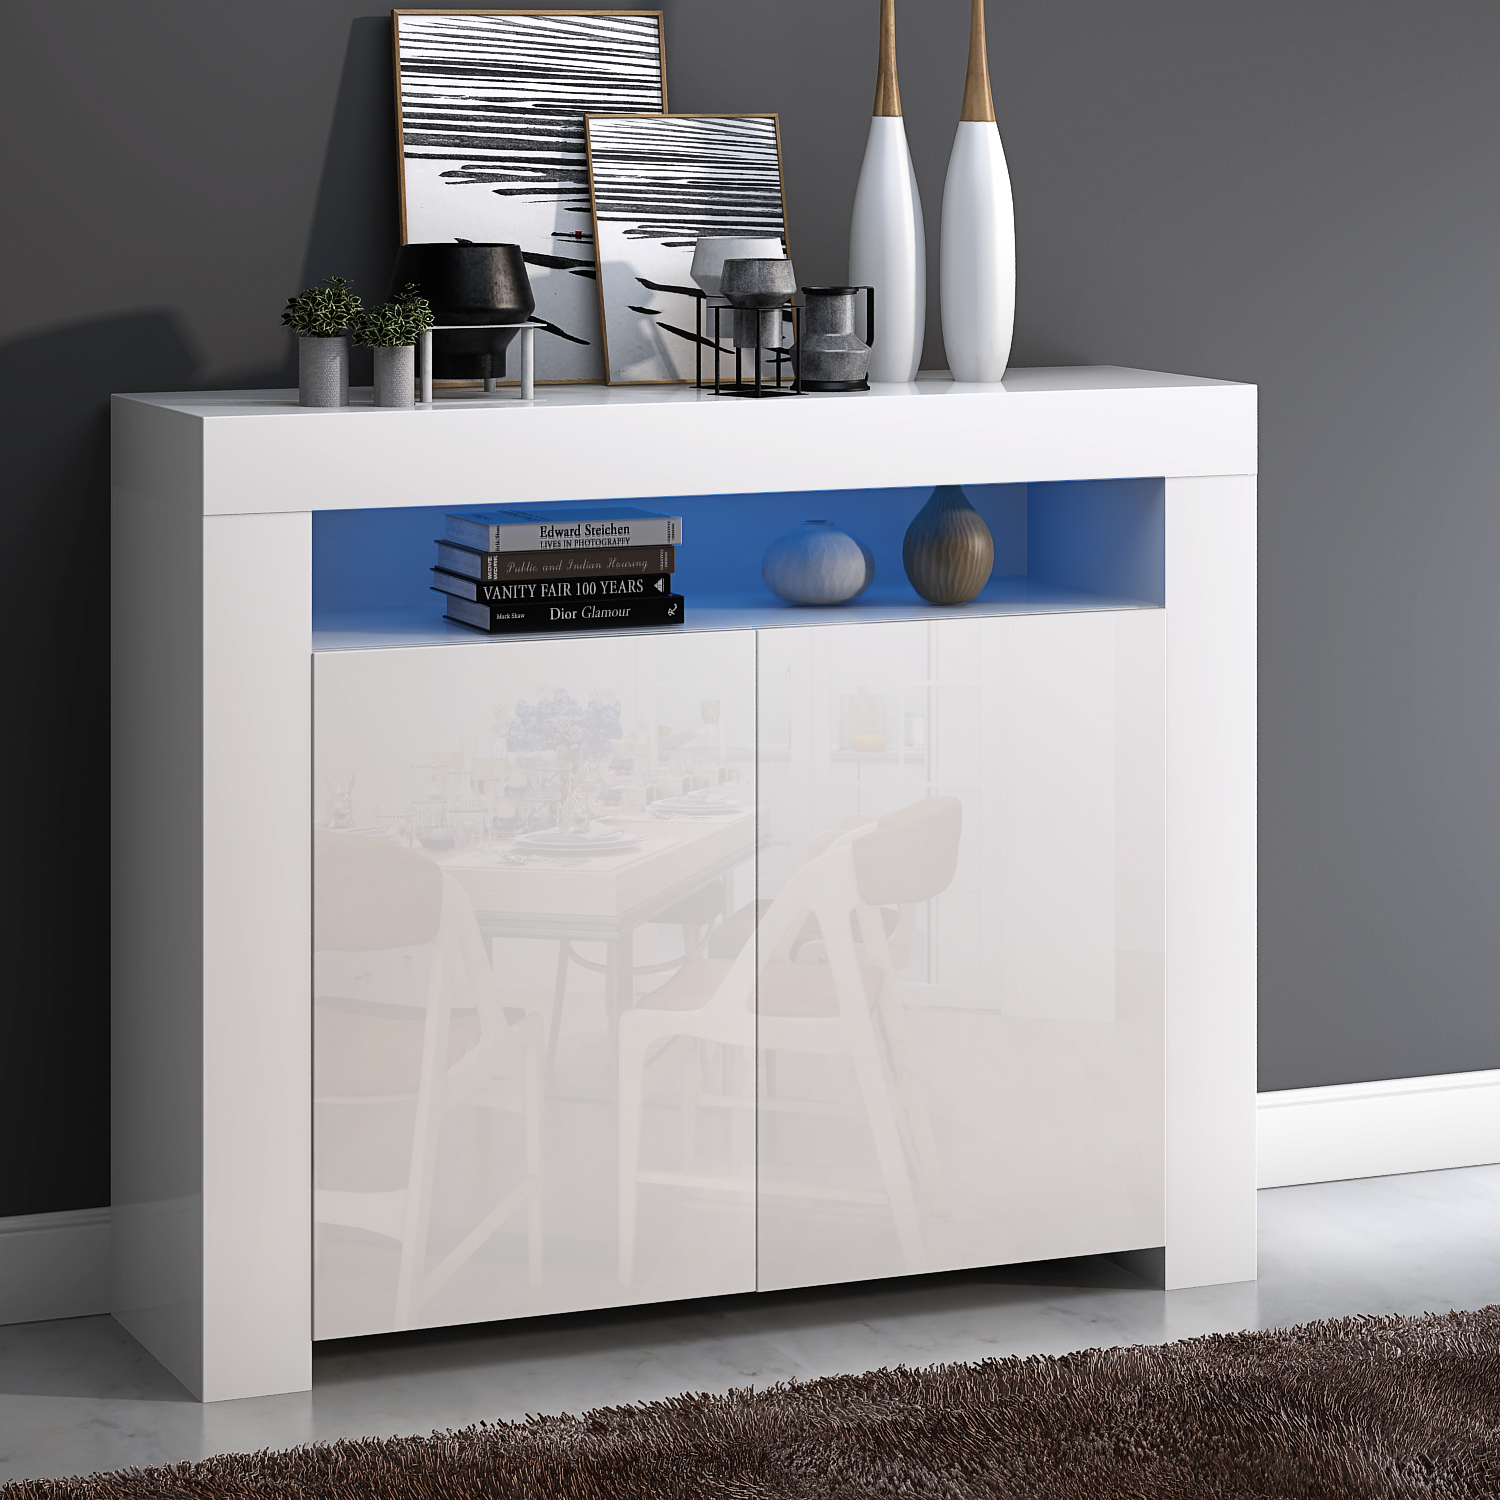 Panana Two High Gloss Doors Sideboard Storage Cabinet With RGB Multicolor LED Lighting Livingroom Display Furnitures